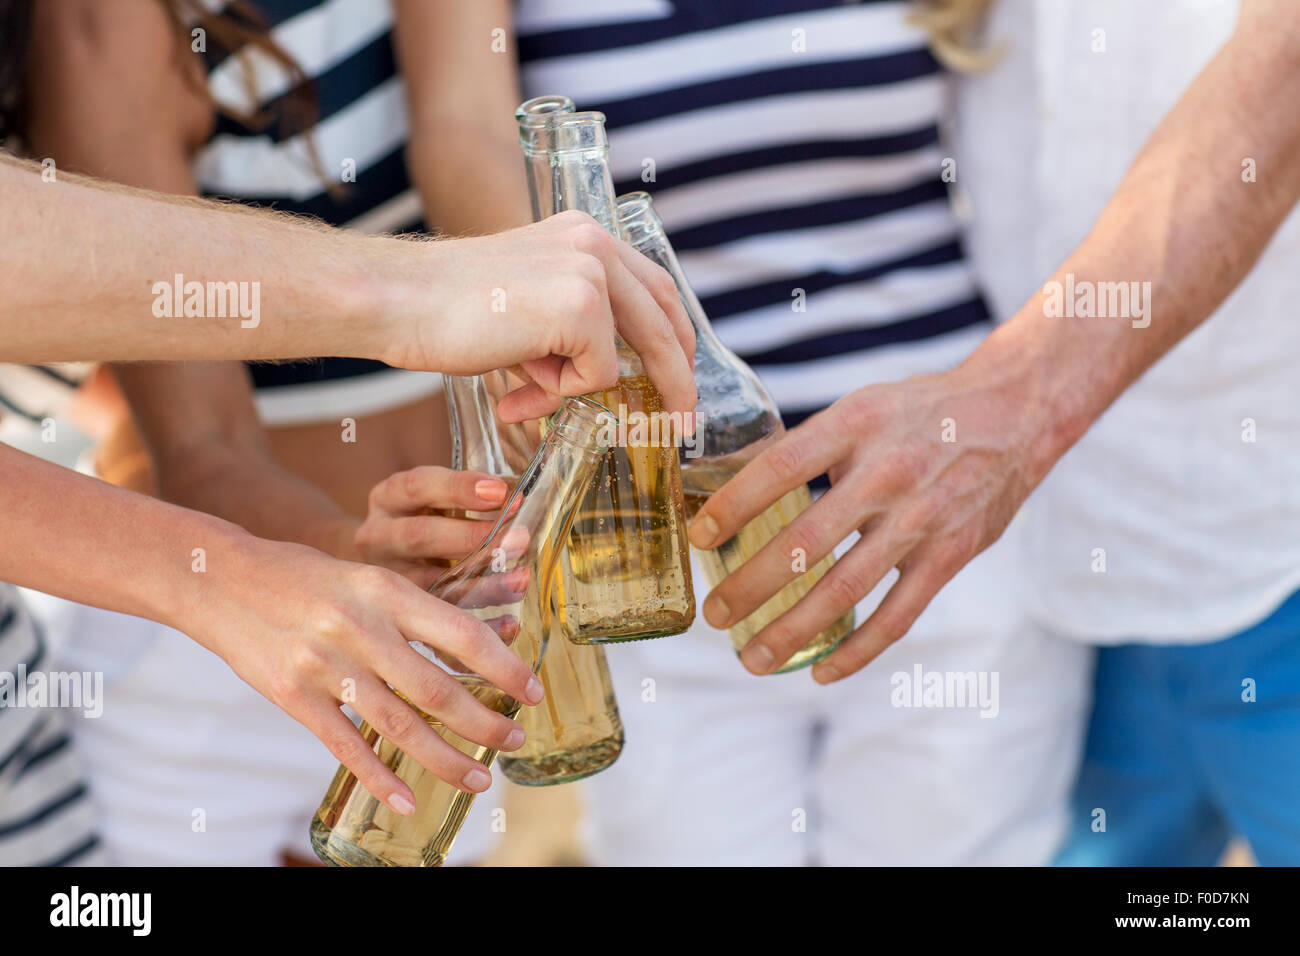 close up of hands clinking bottles with drinks - Stock Image